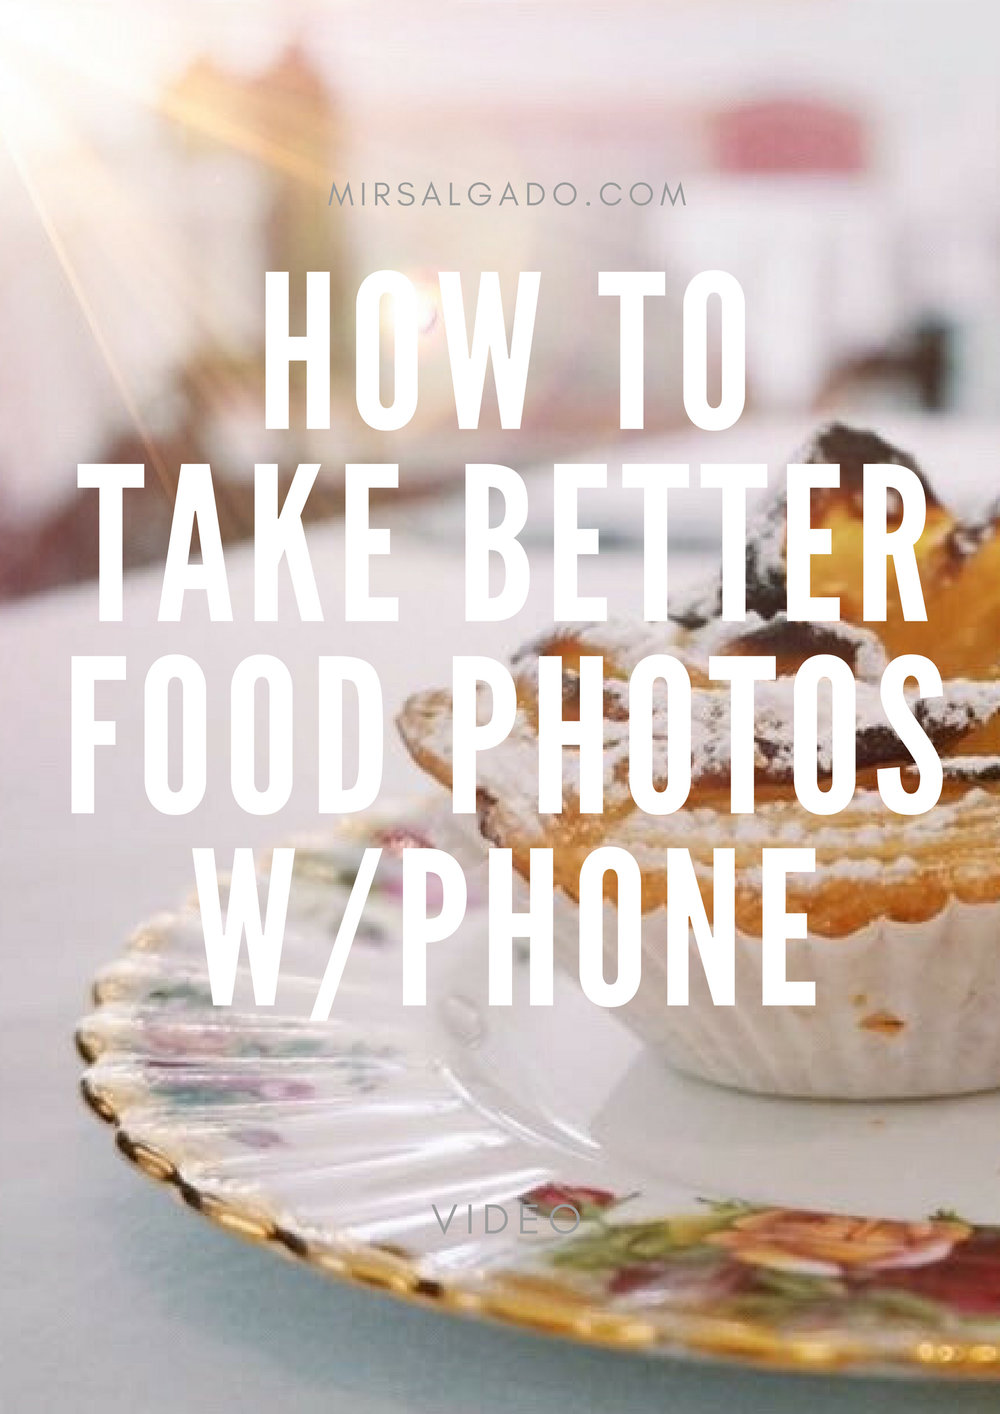 How-to-take-better-photos, tips-photos